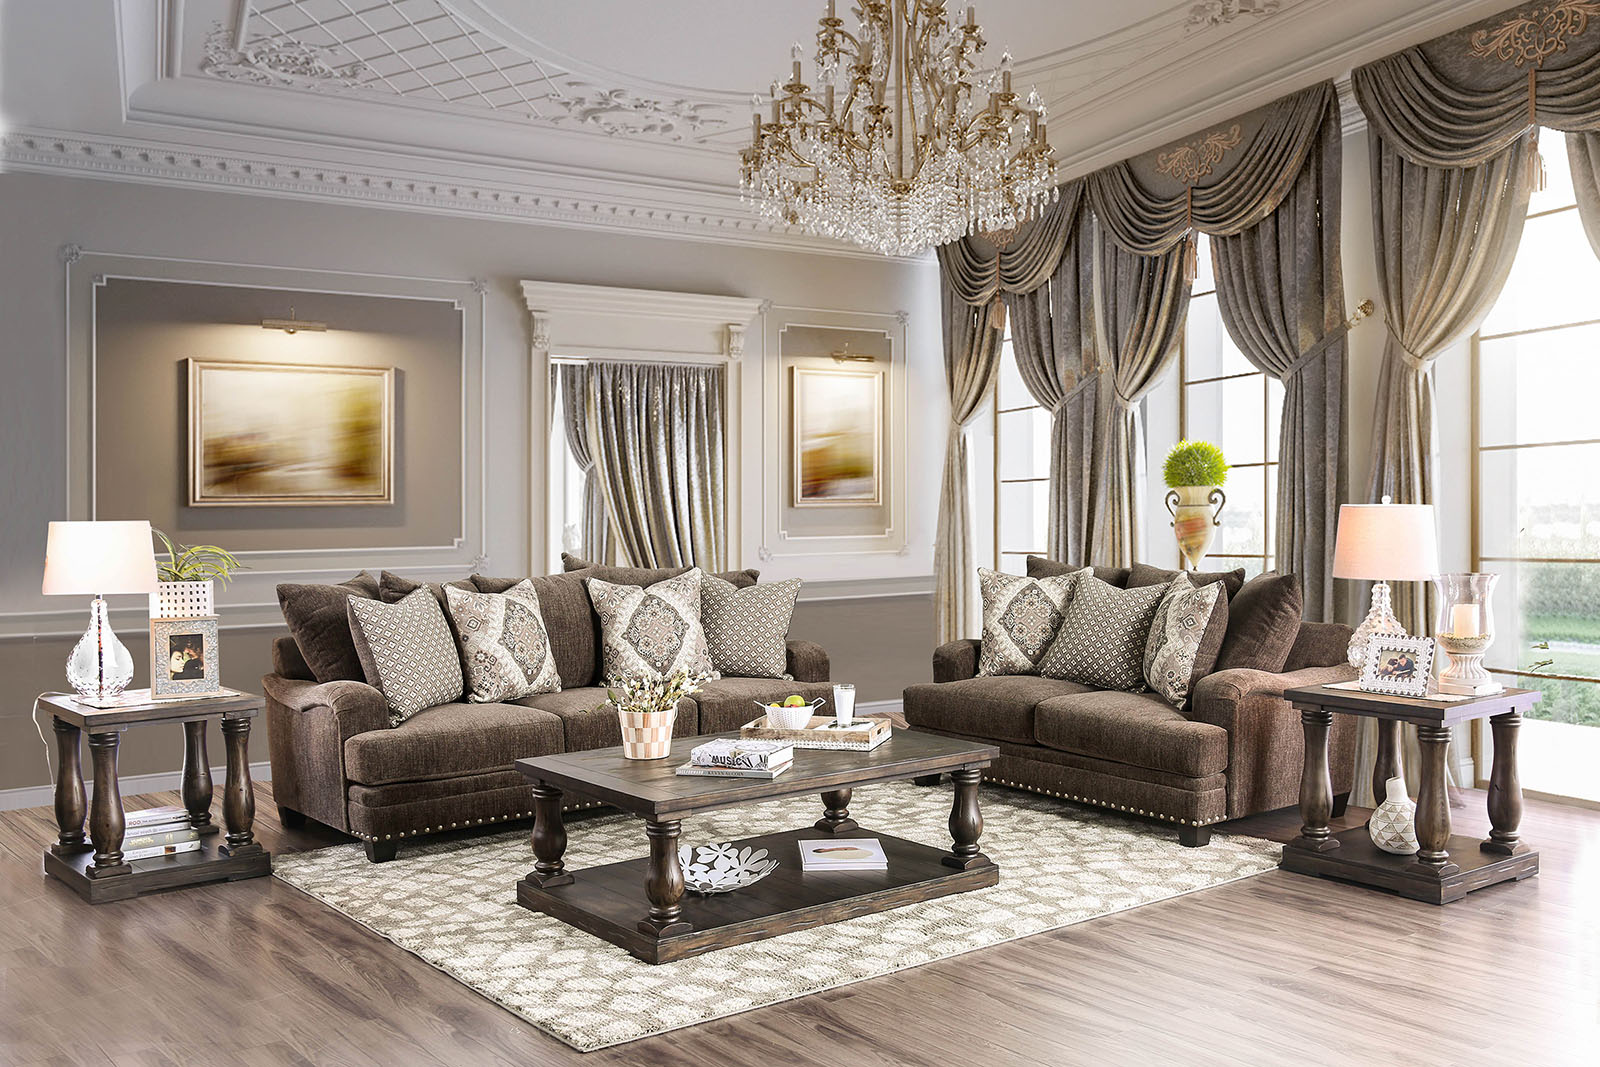 Dark Color Schemes For Living Rooms   Marvelous House